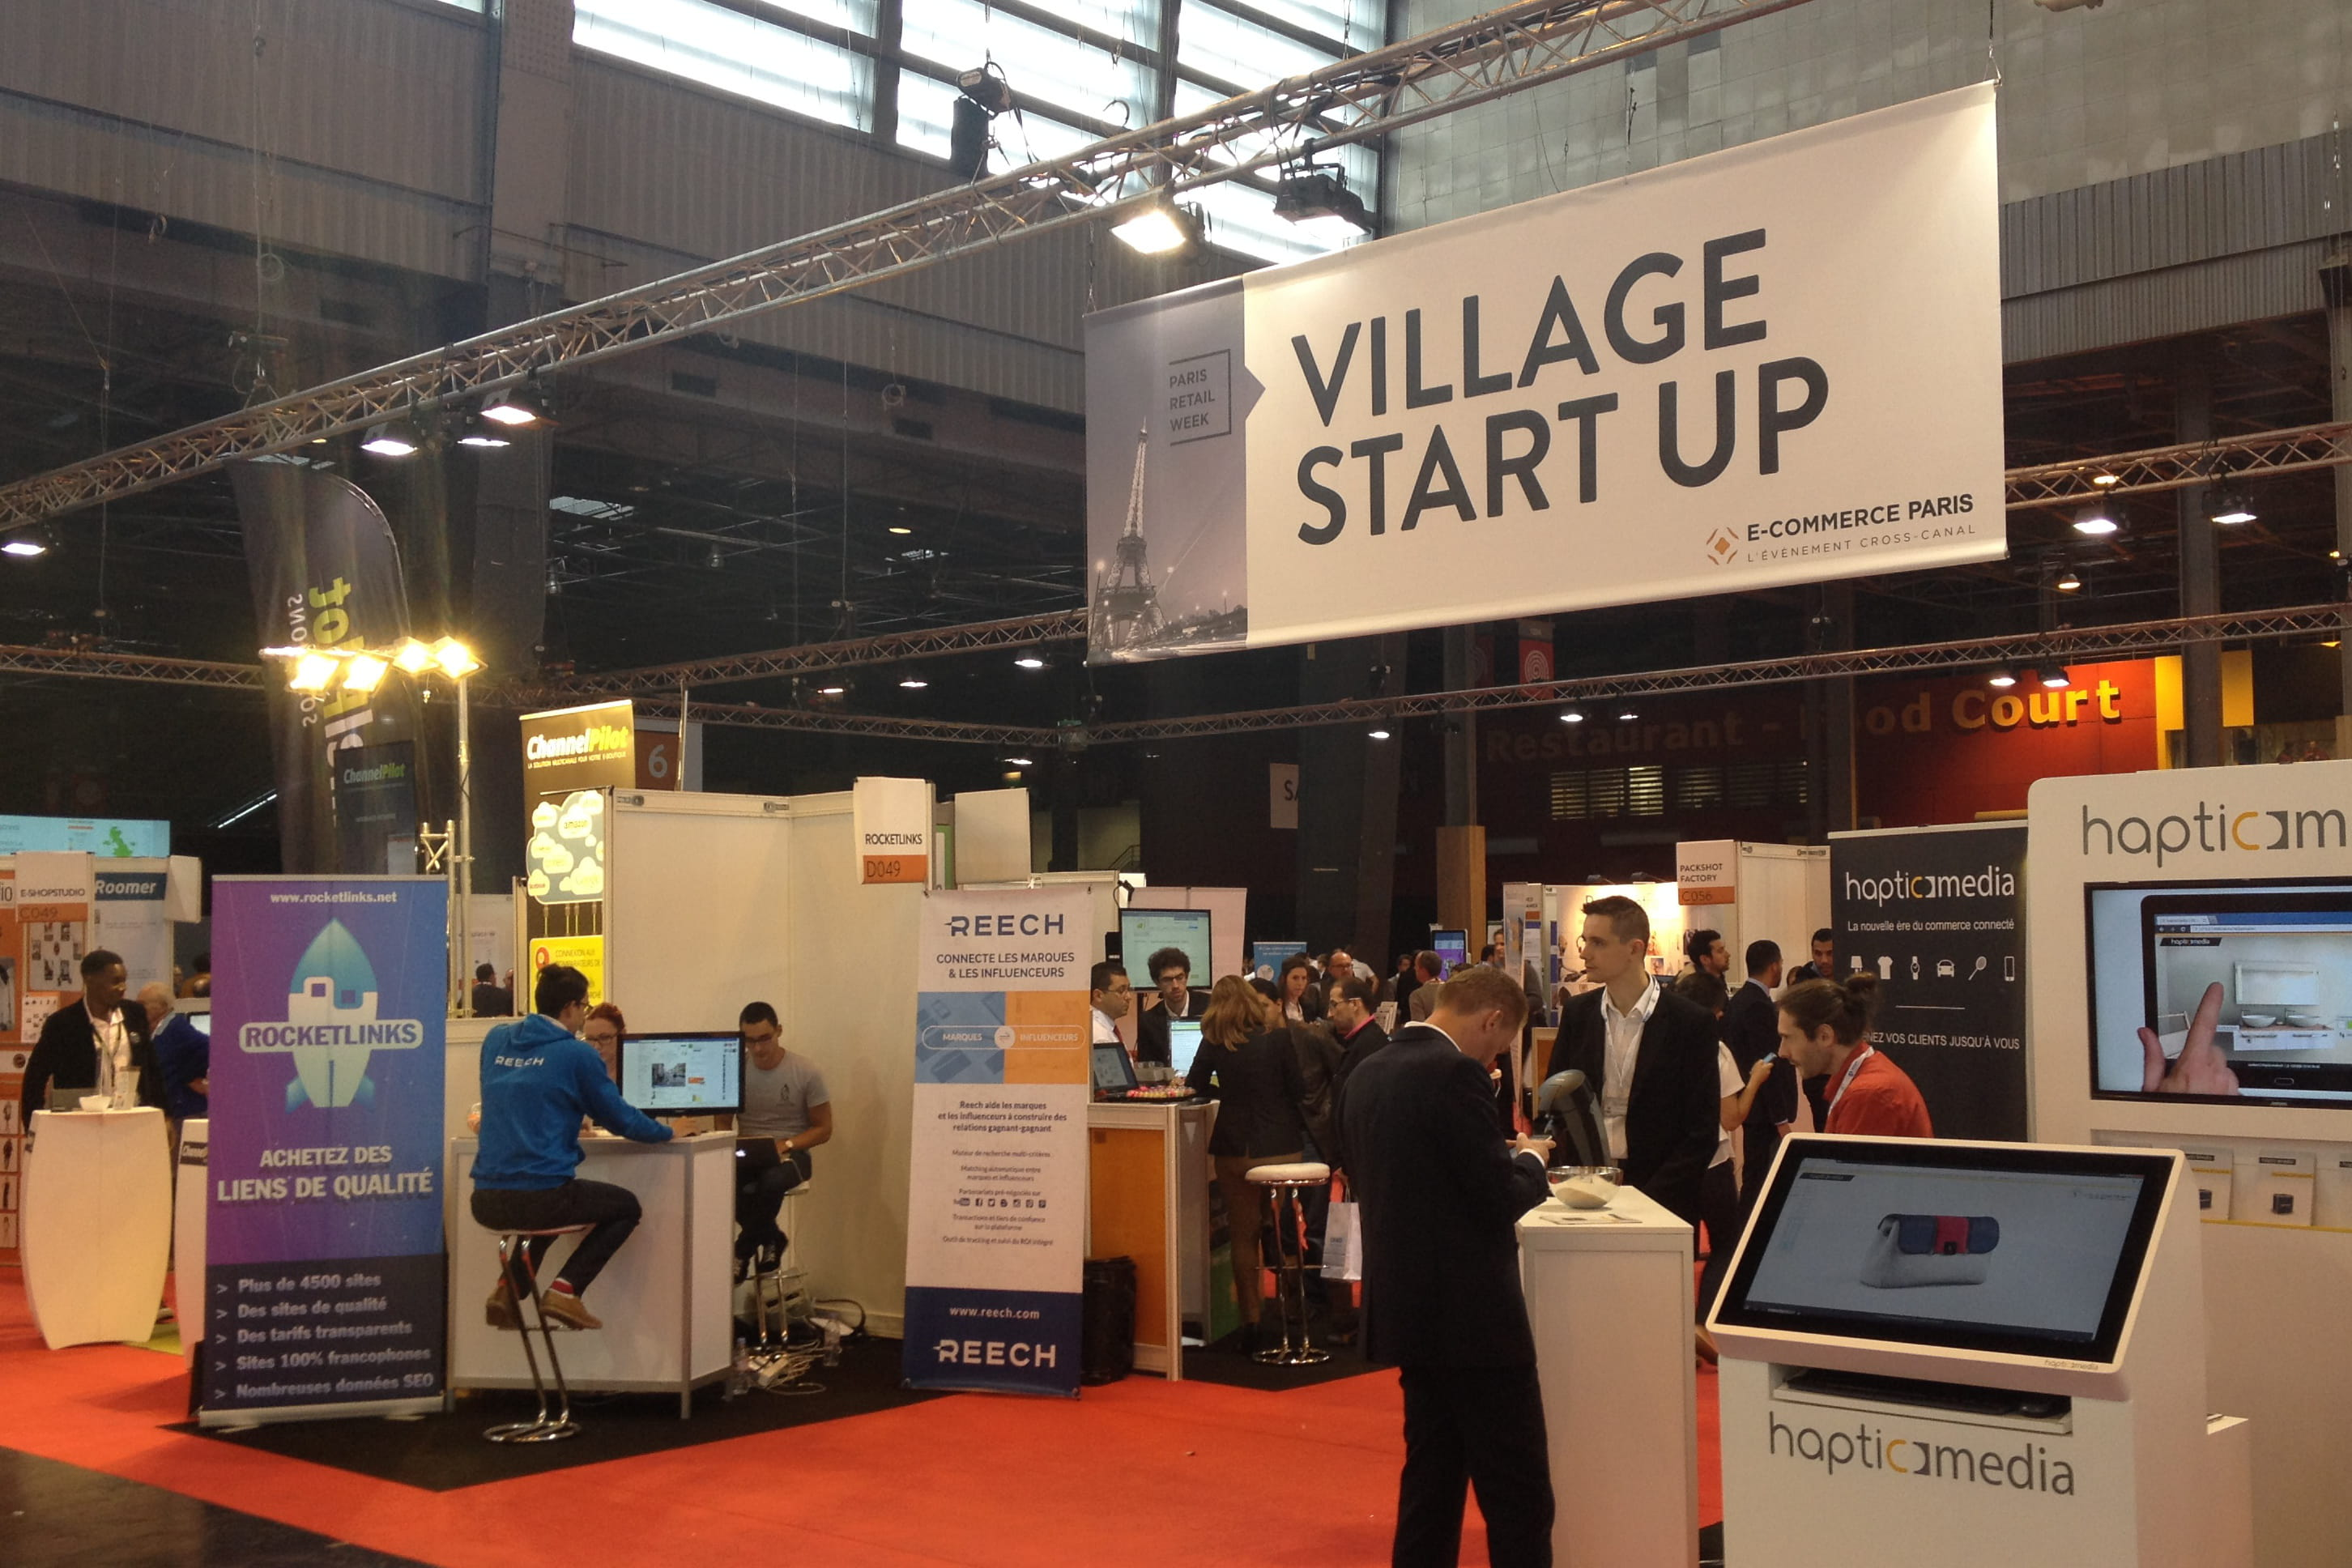 Les 5 start up les plus innovantes d e commerce paris 2015 for Salon e commerce paris 2017